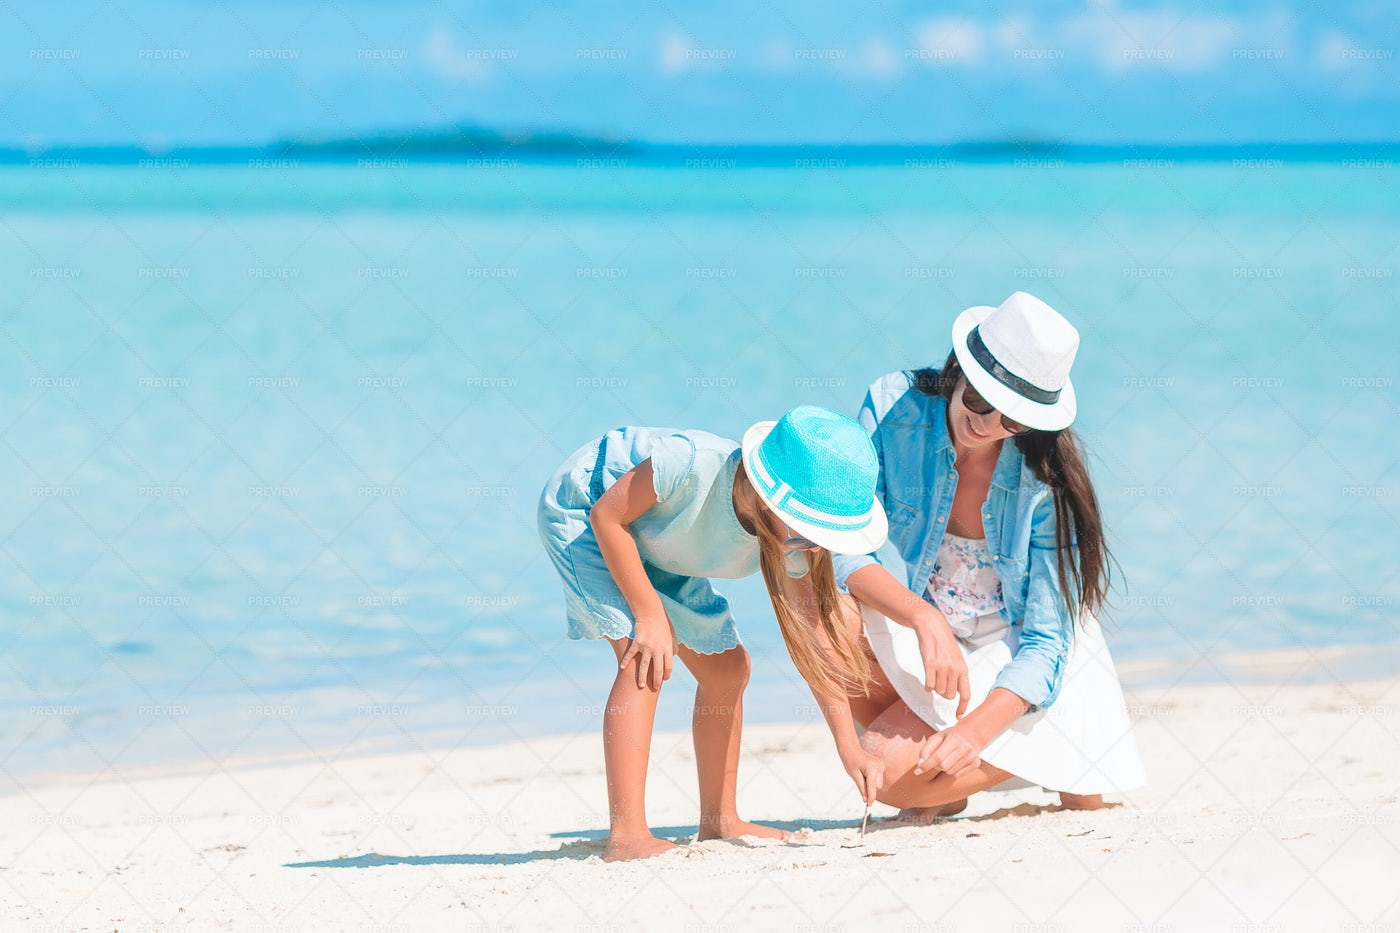 Mom And Girl Drawing In The Sand: Stock Photos